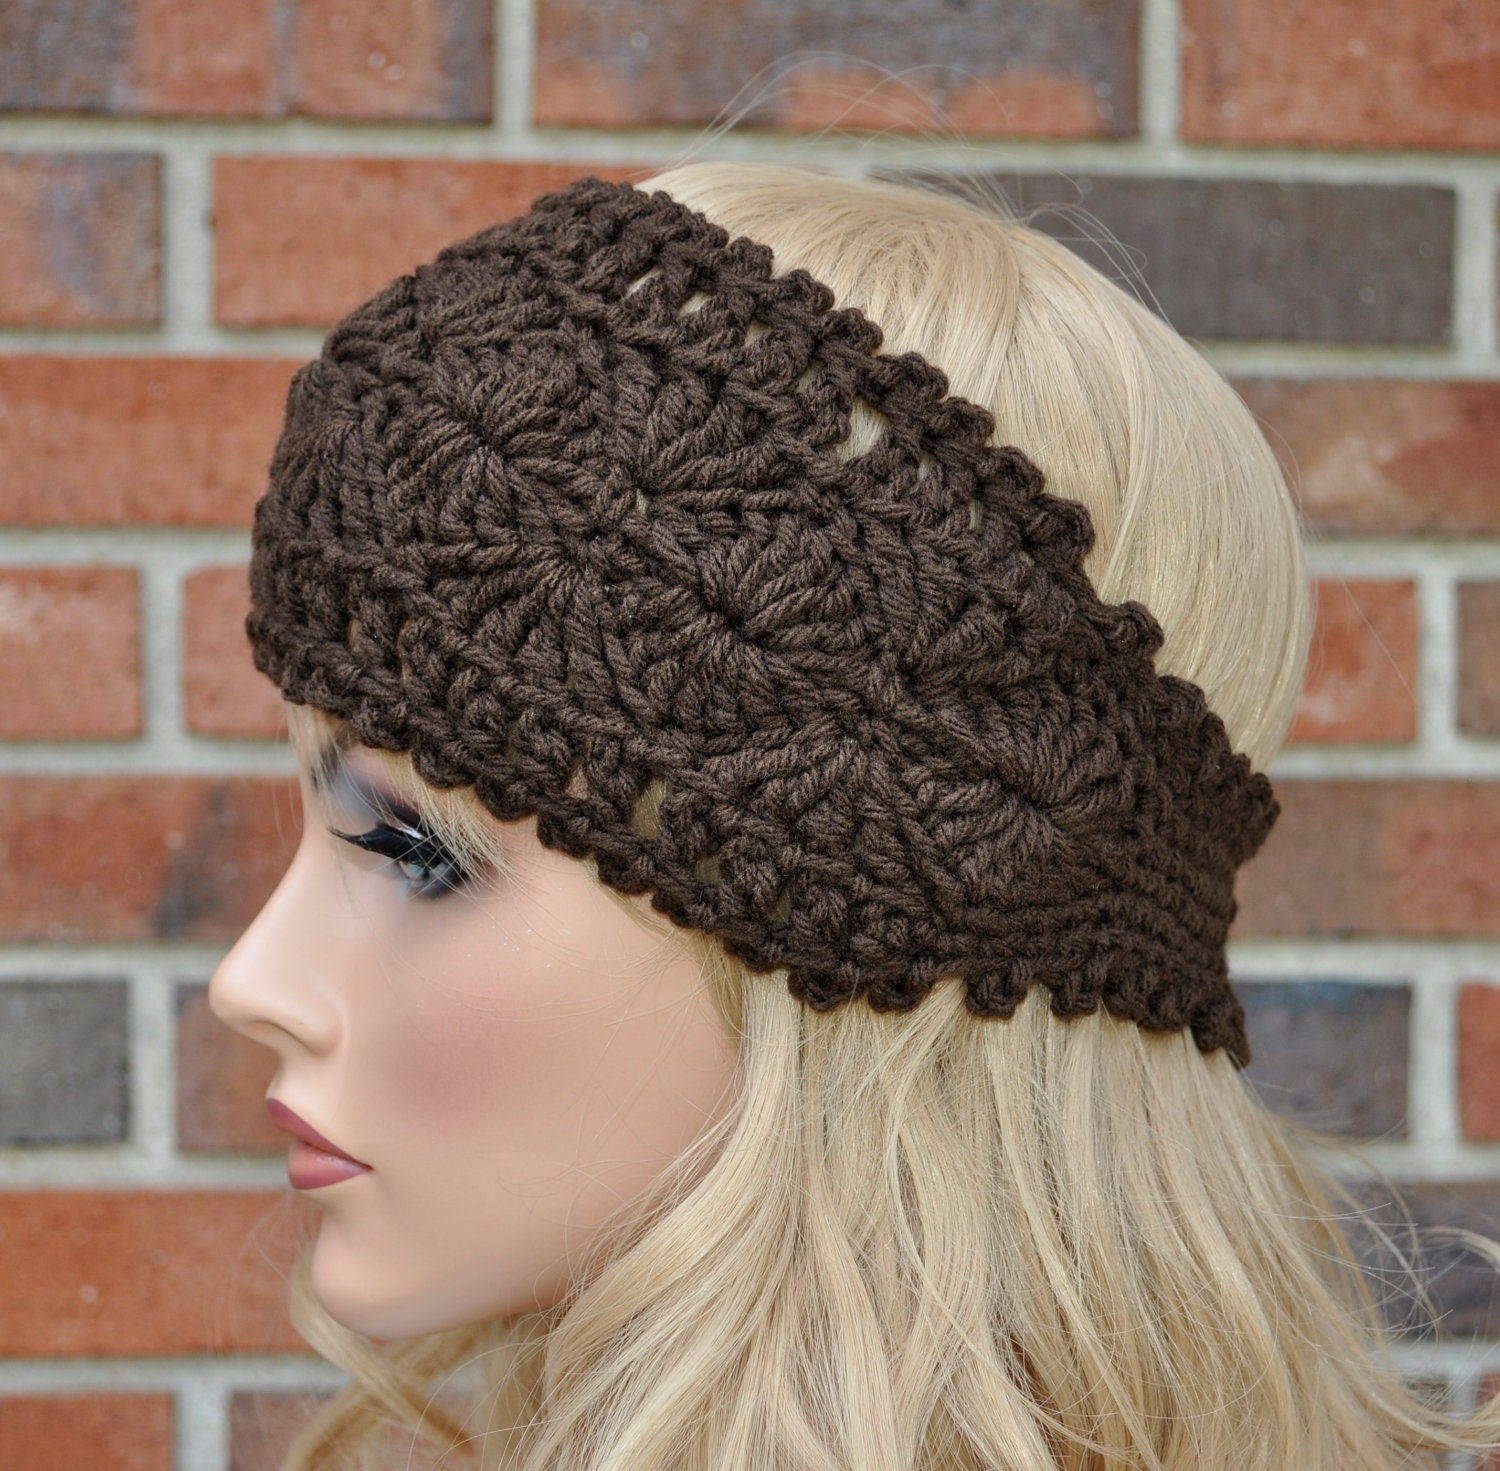 Free Crochet Pattern Headband Ear Warmer Button : Crochet Headwrap Womens Crochet Headband in Chocolate